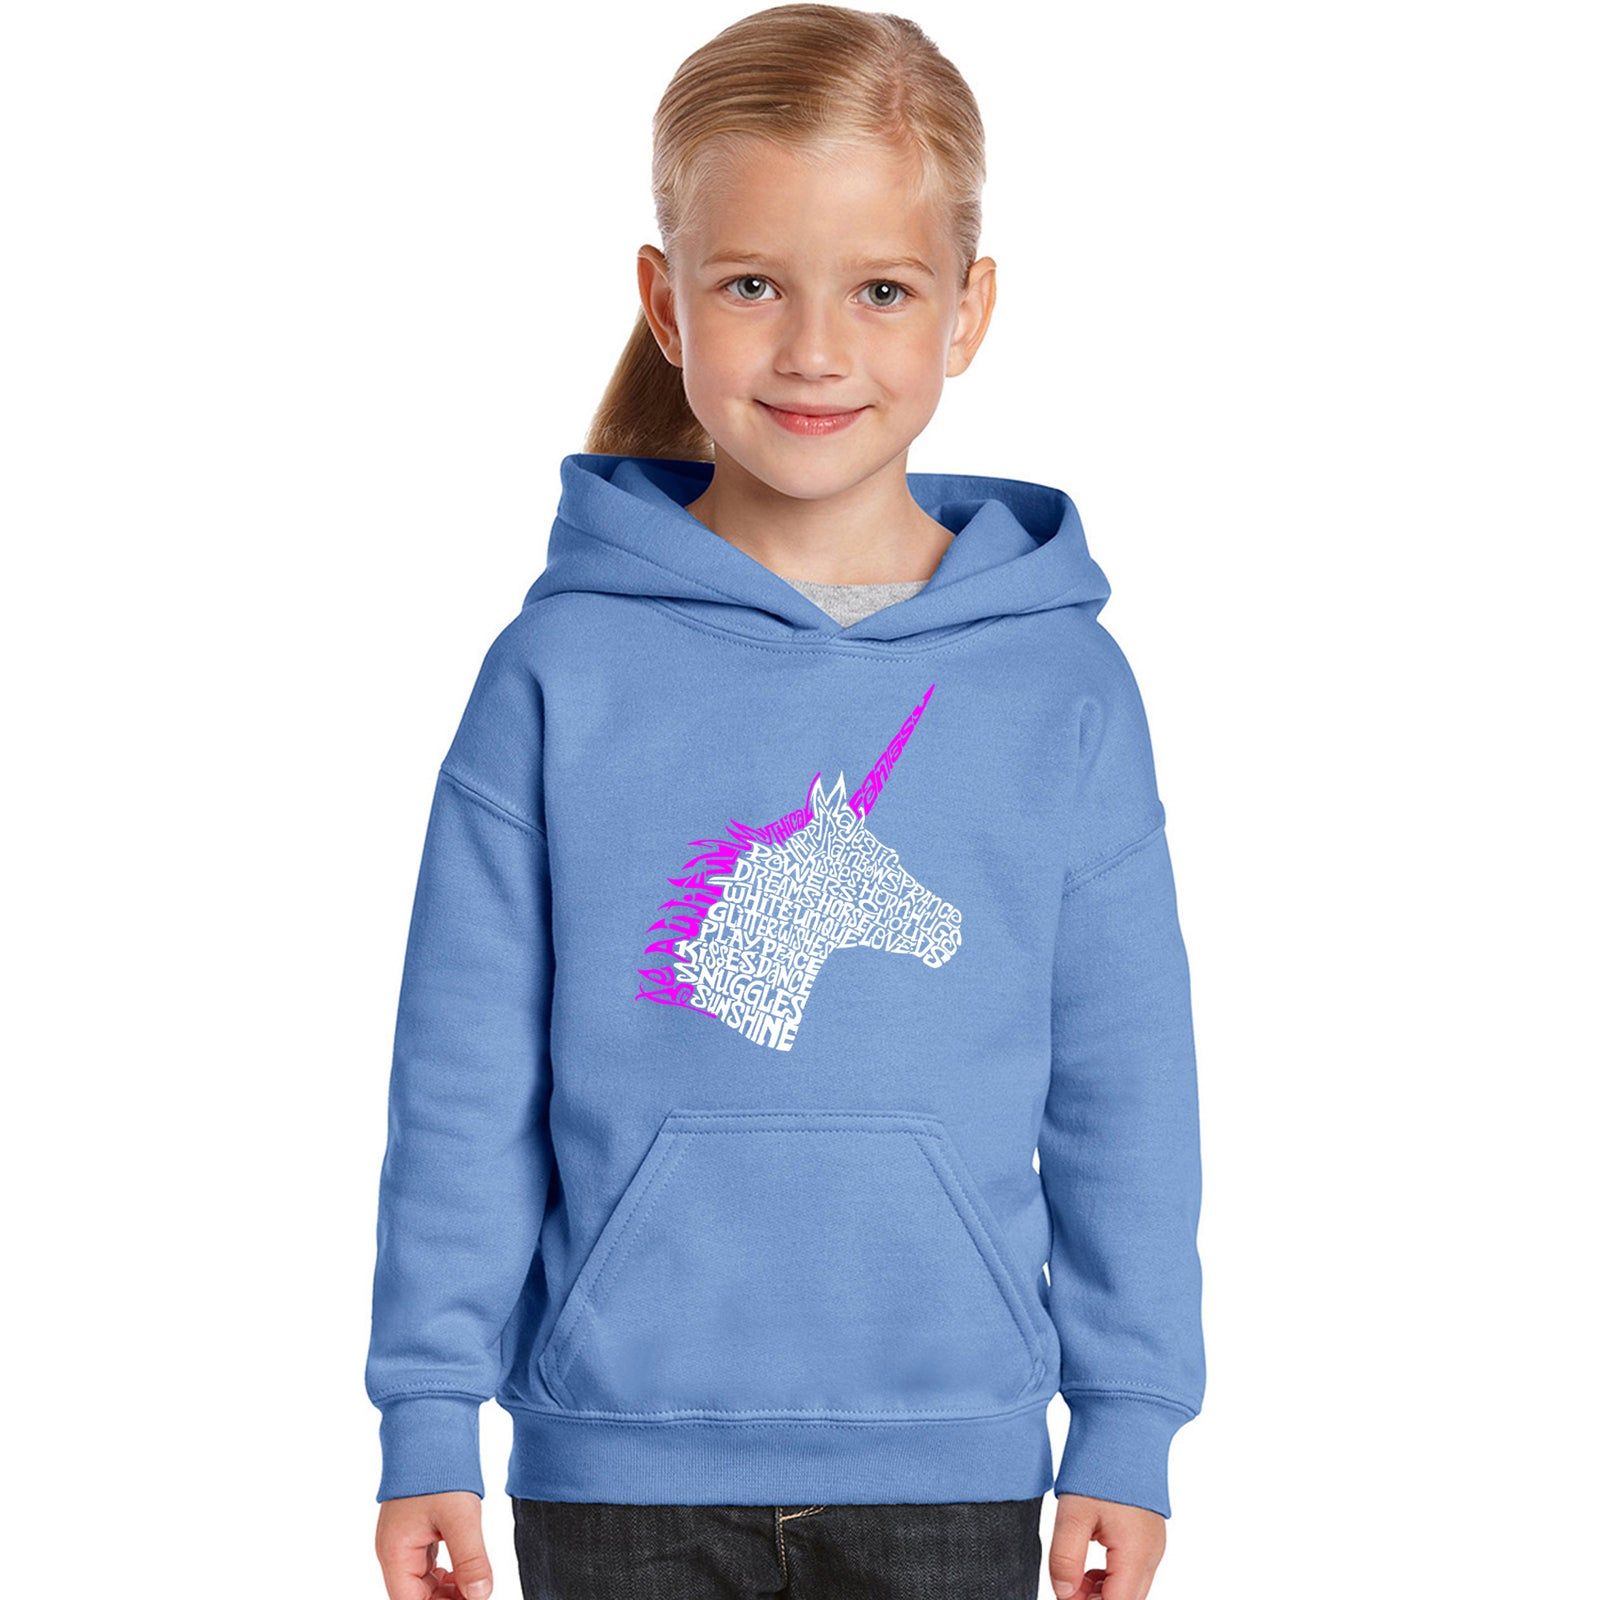 Girl's Word Art Hooded Sweatshirt - Unicorn